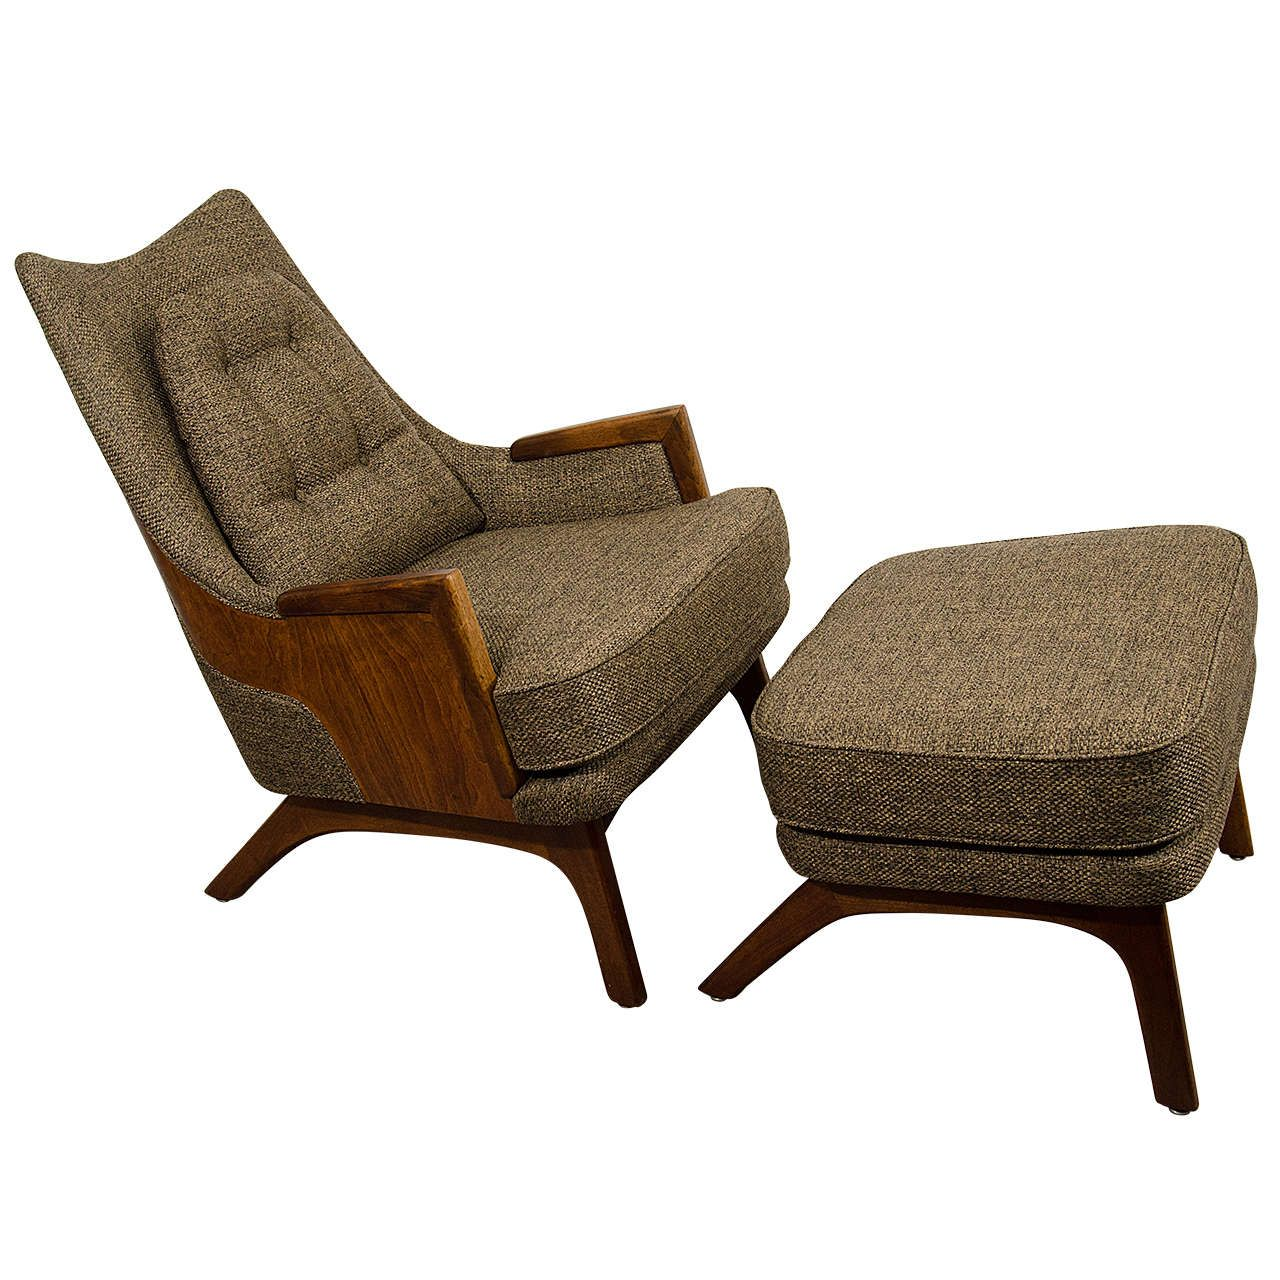 Antique lounge chairs - Fantastic Design Midcentury Adrian Pearsall Lounge Chair With Ottoman